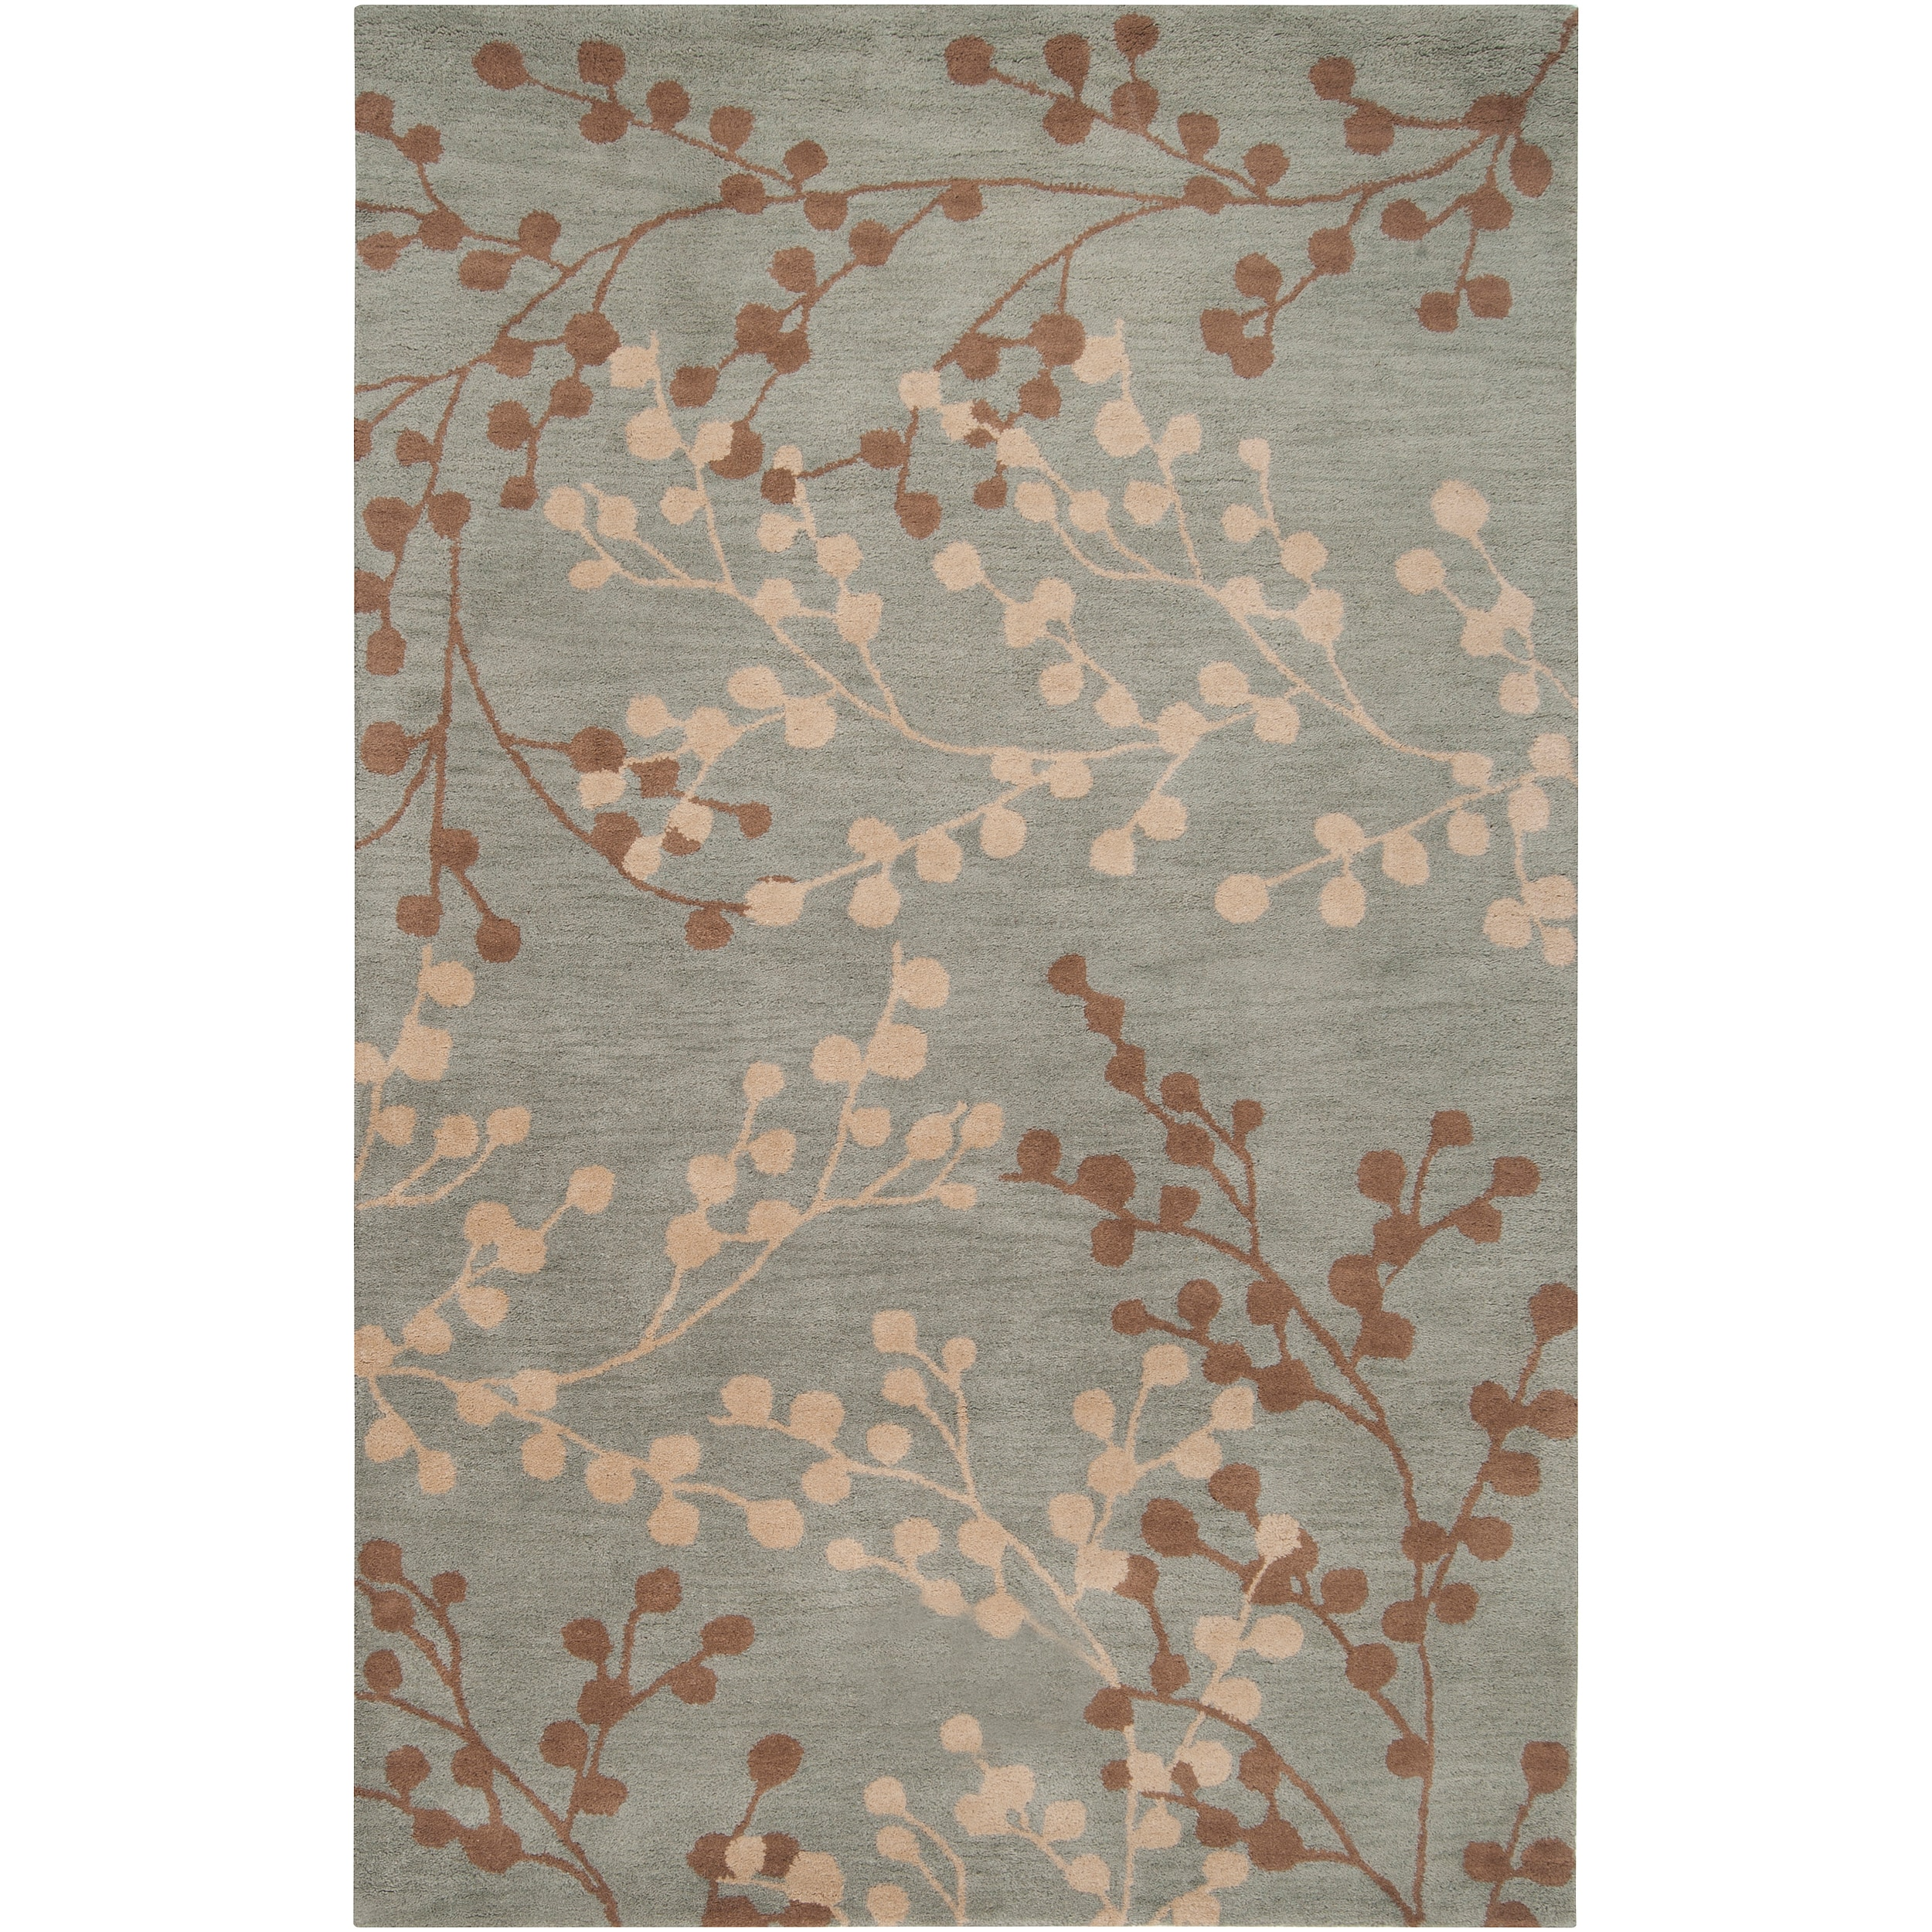 Hand-tufted Blossom Blue Floral Wool Rug (8u0026#39;x10u0026#39;) - Free Shipping Today - Overstock.com - 14056703